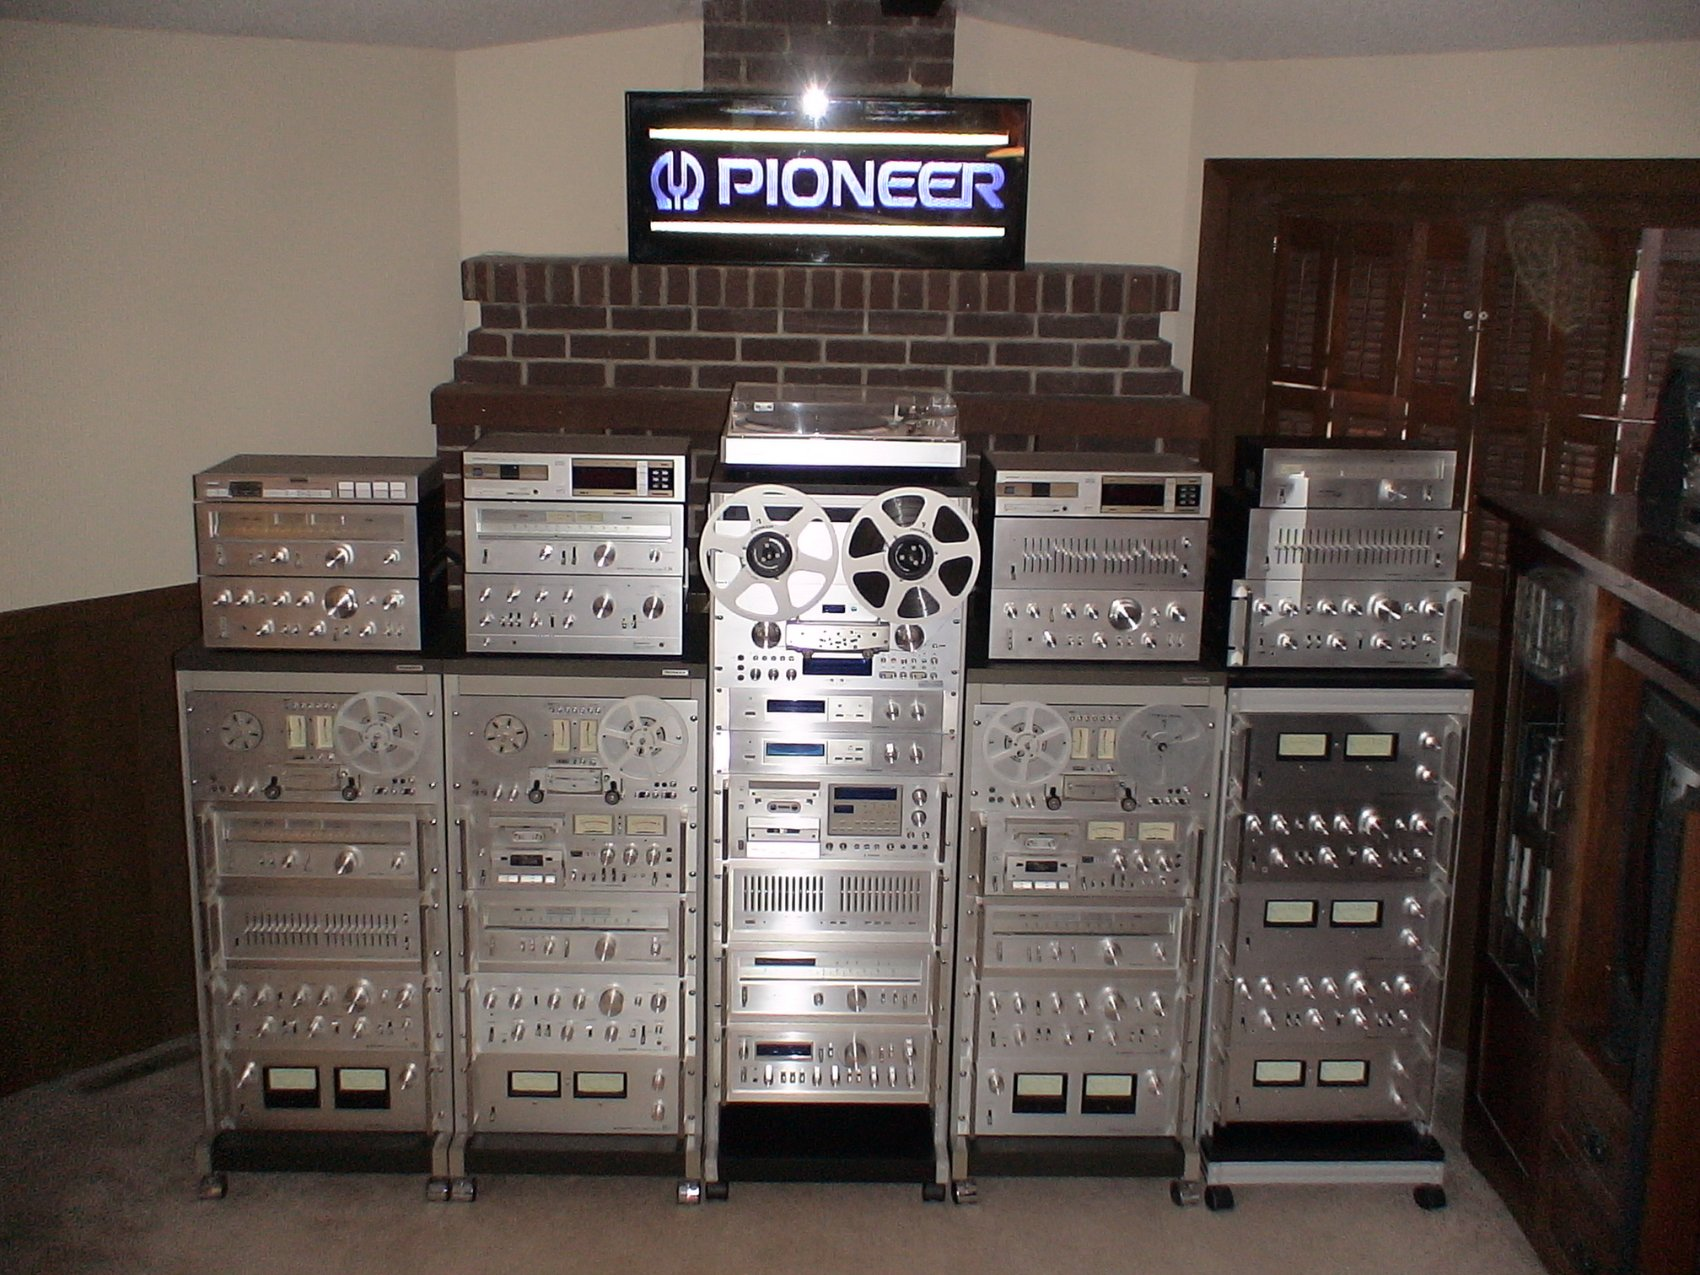 514Silver_Wall_of_Pioneer_SPEC_Gear.jpg